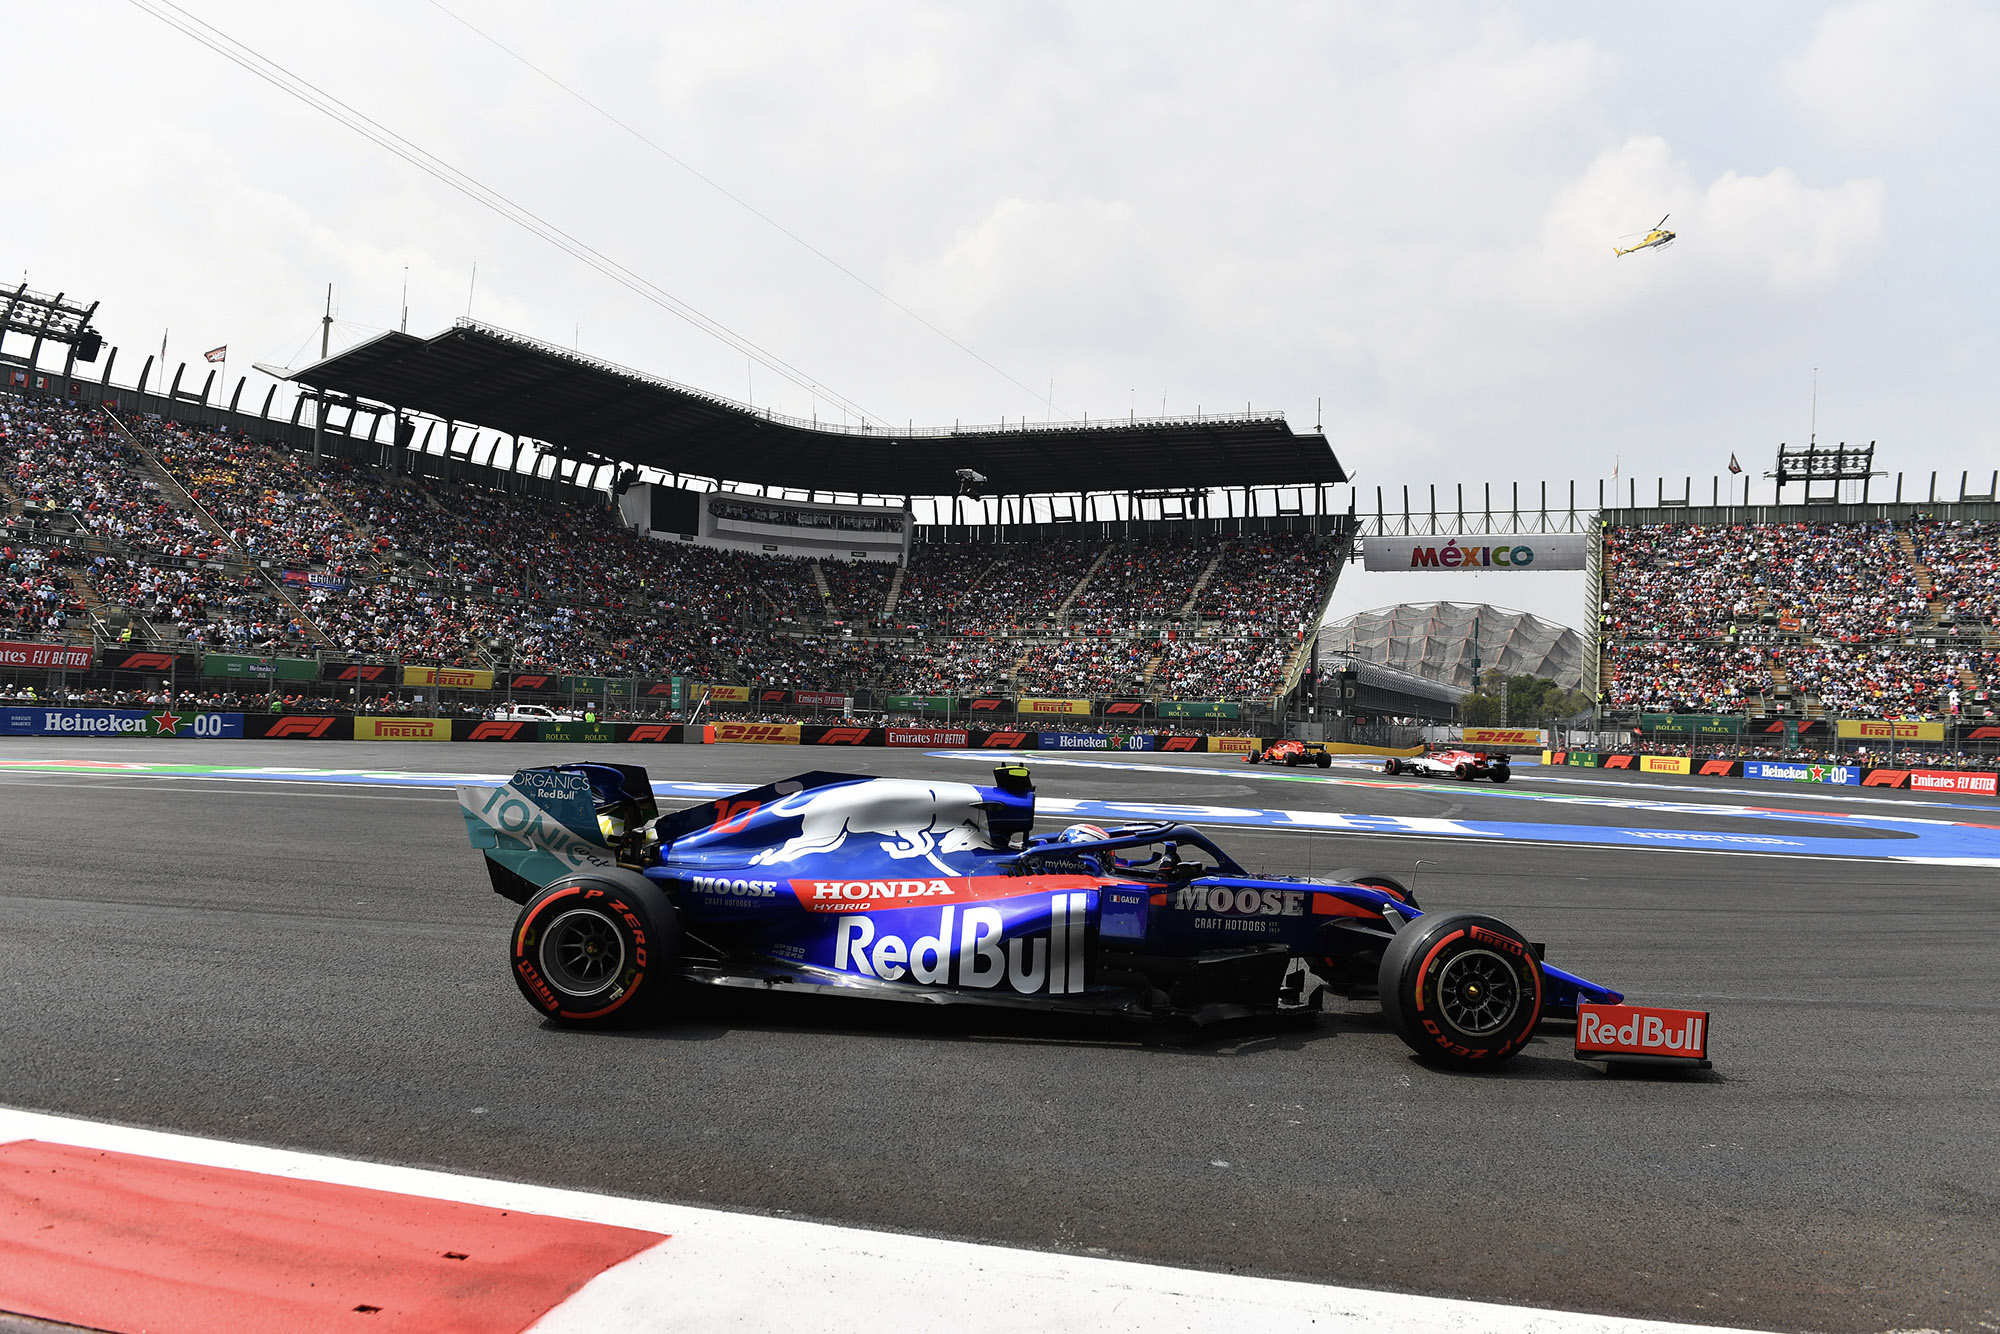 Toro Rosso during qualifying for the 2019 F1 Mexican Grand Prix